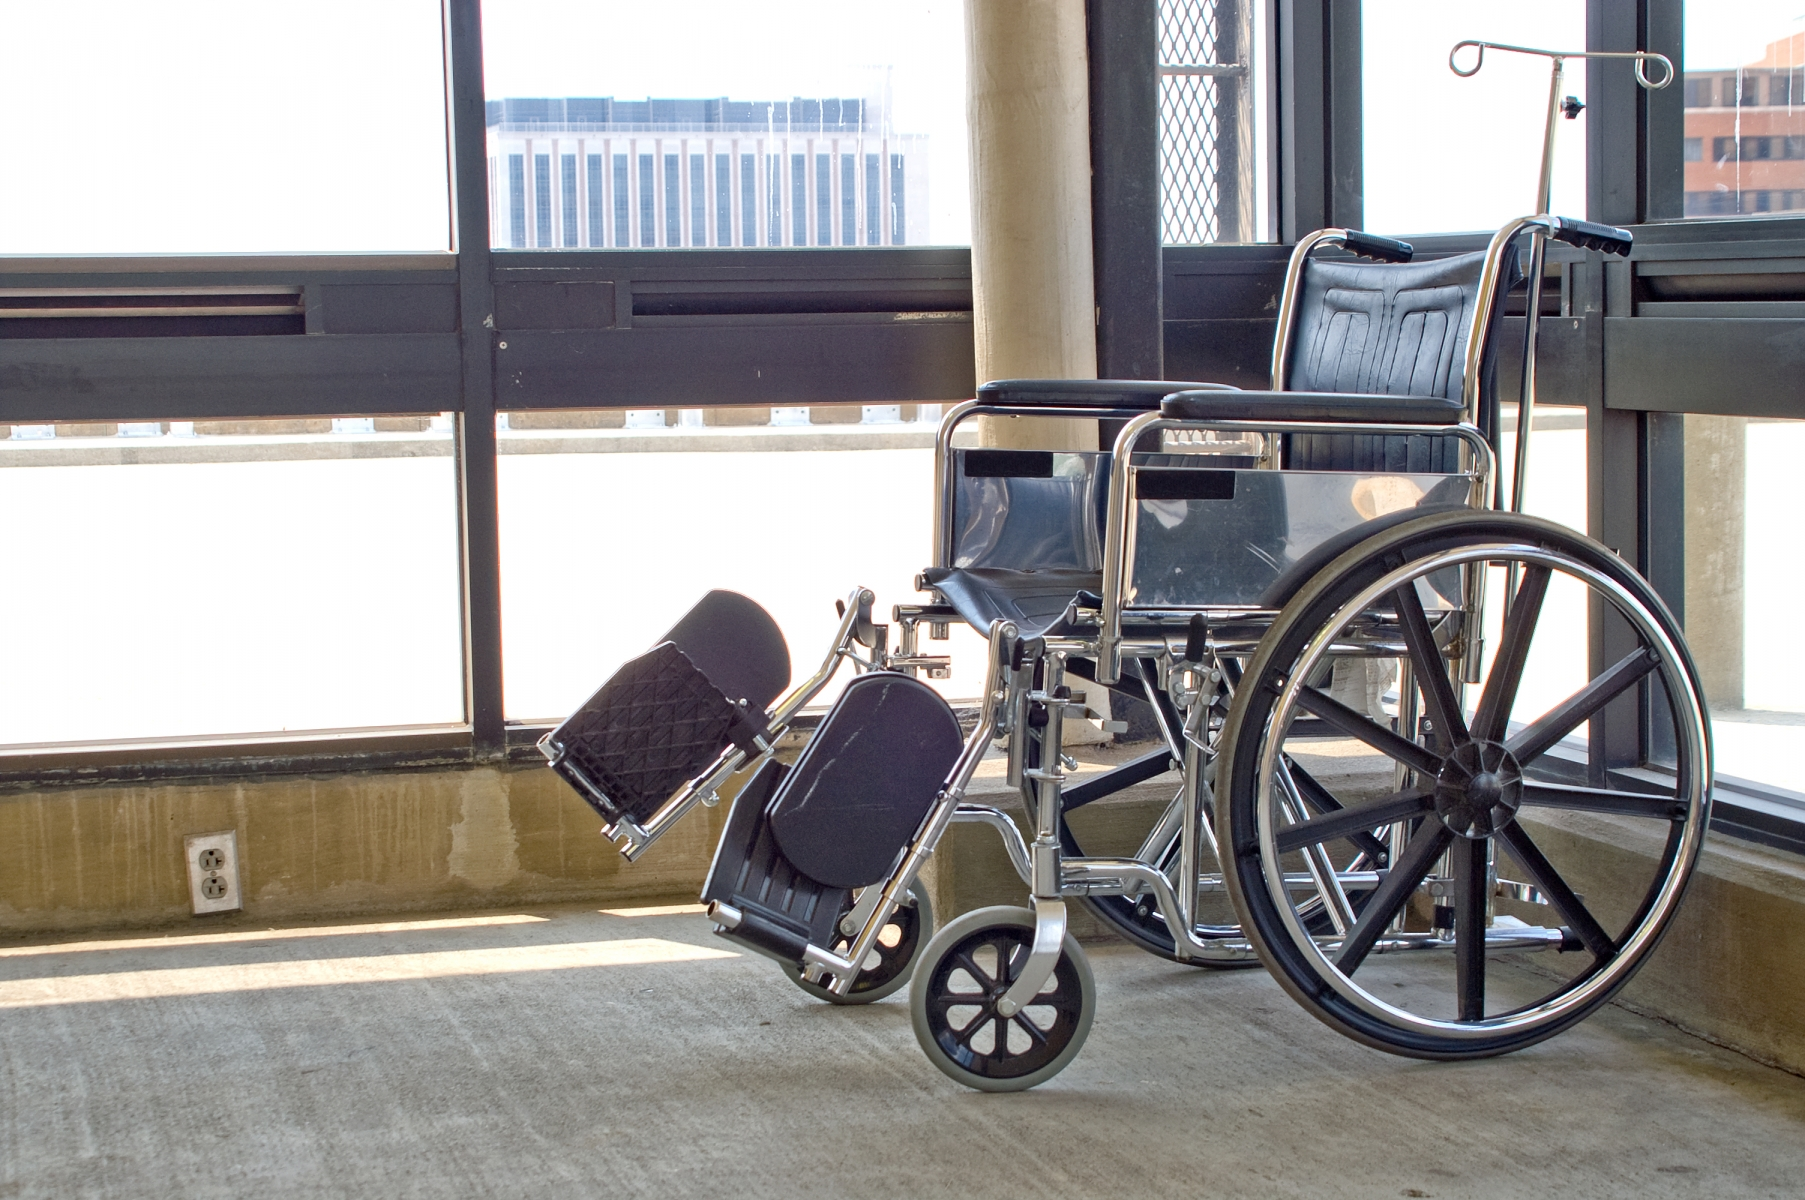 293362-wheelchair.jpg